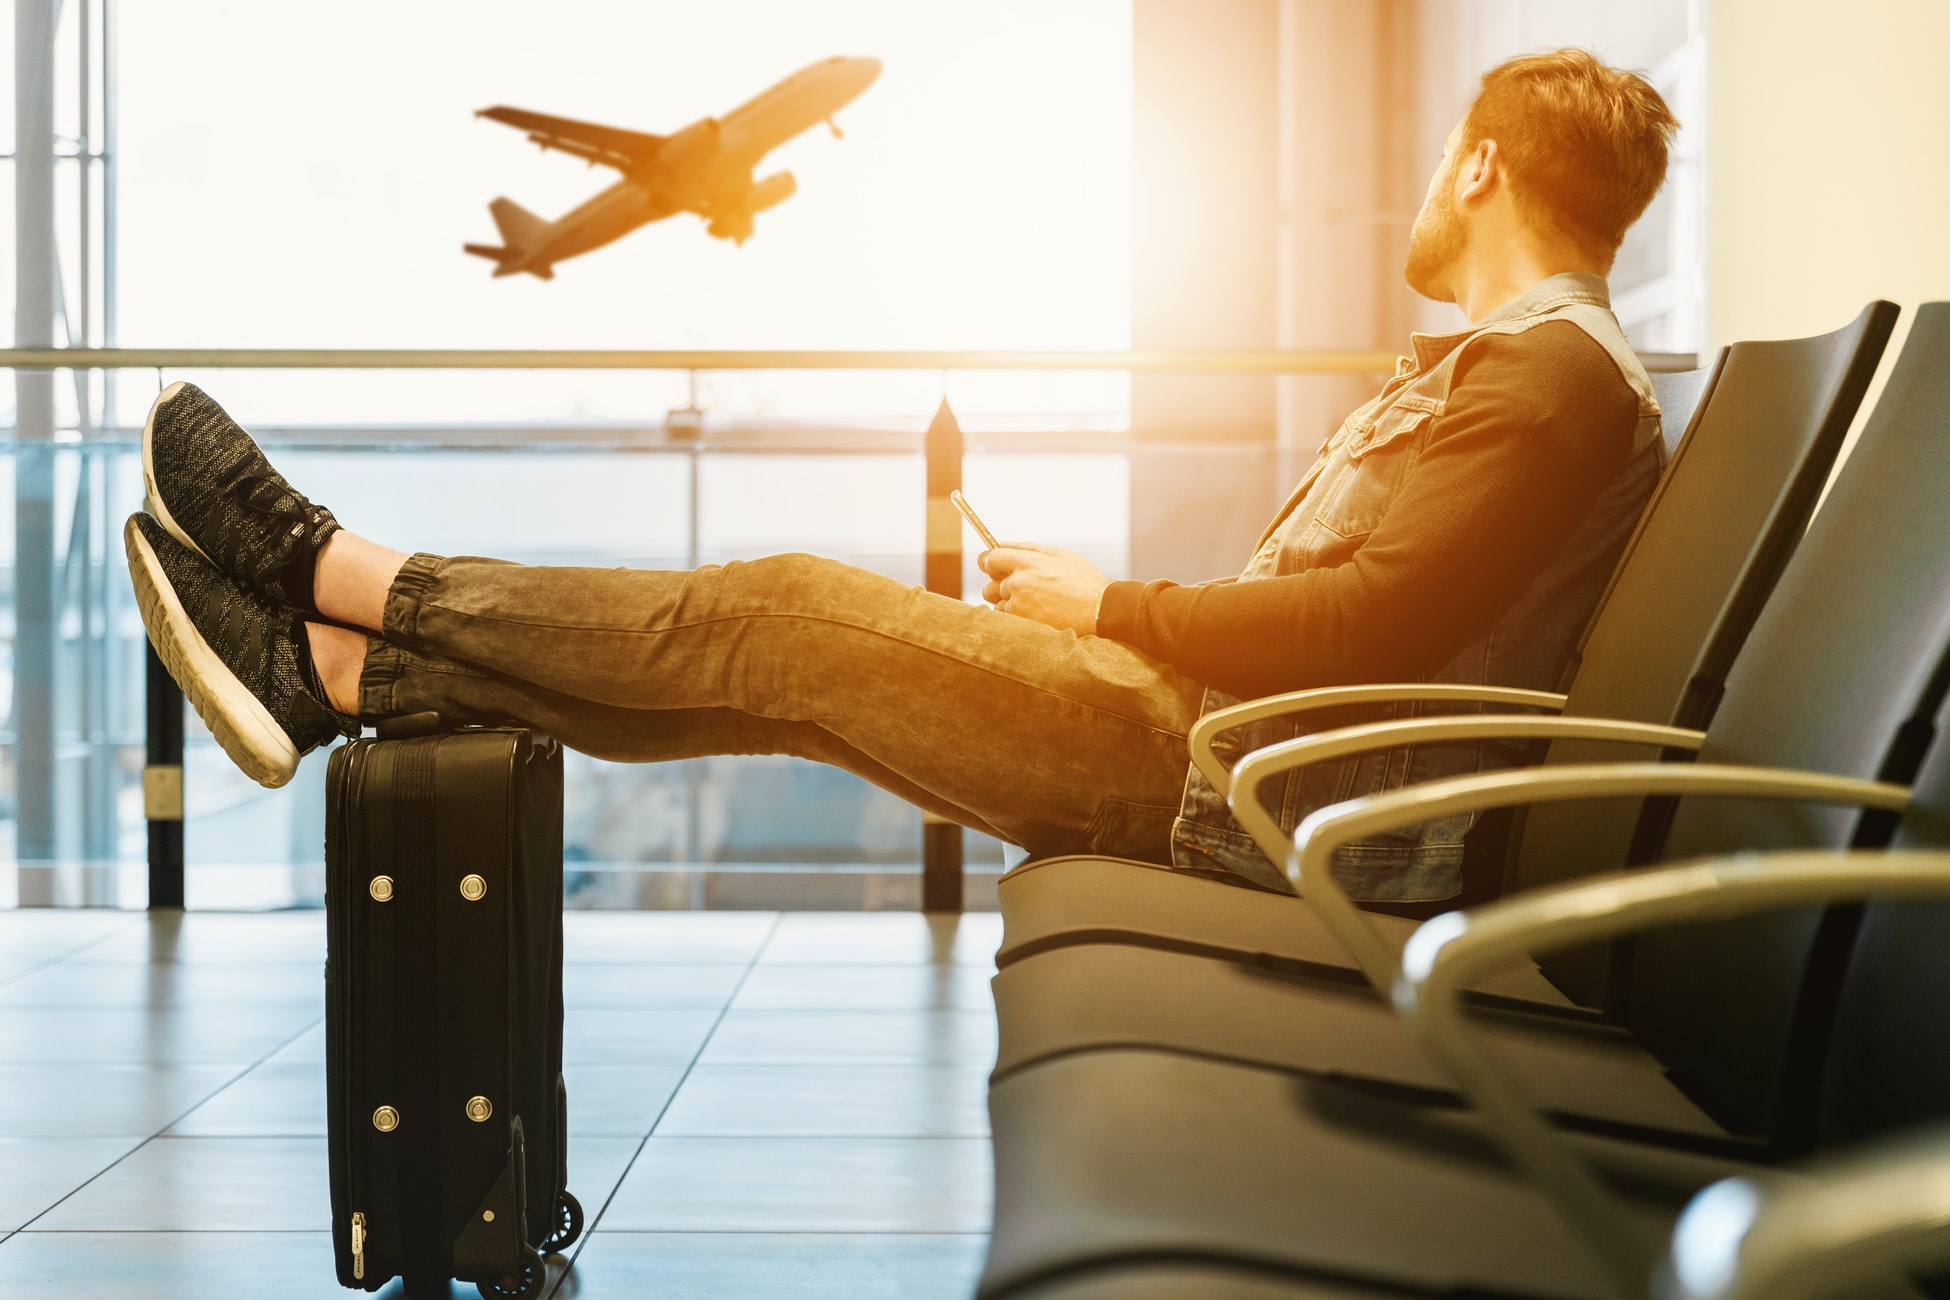 Do you have travelers insurance? Is travel insurance necessary?